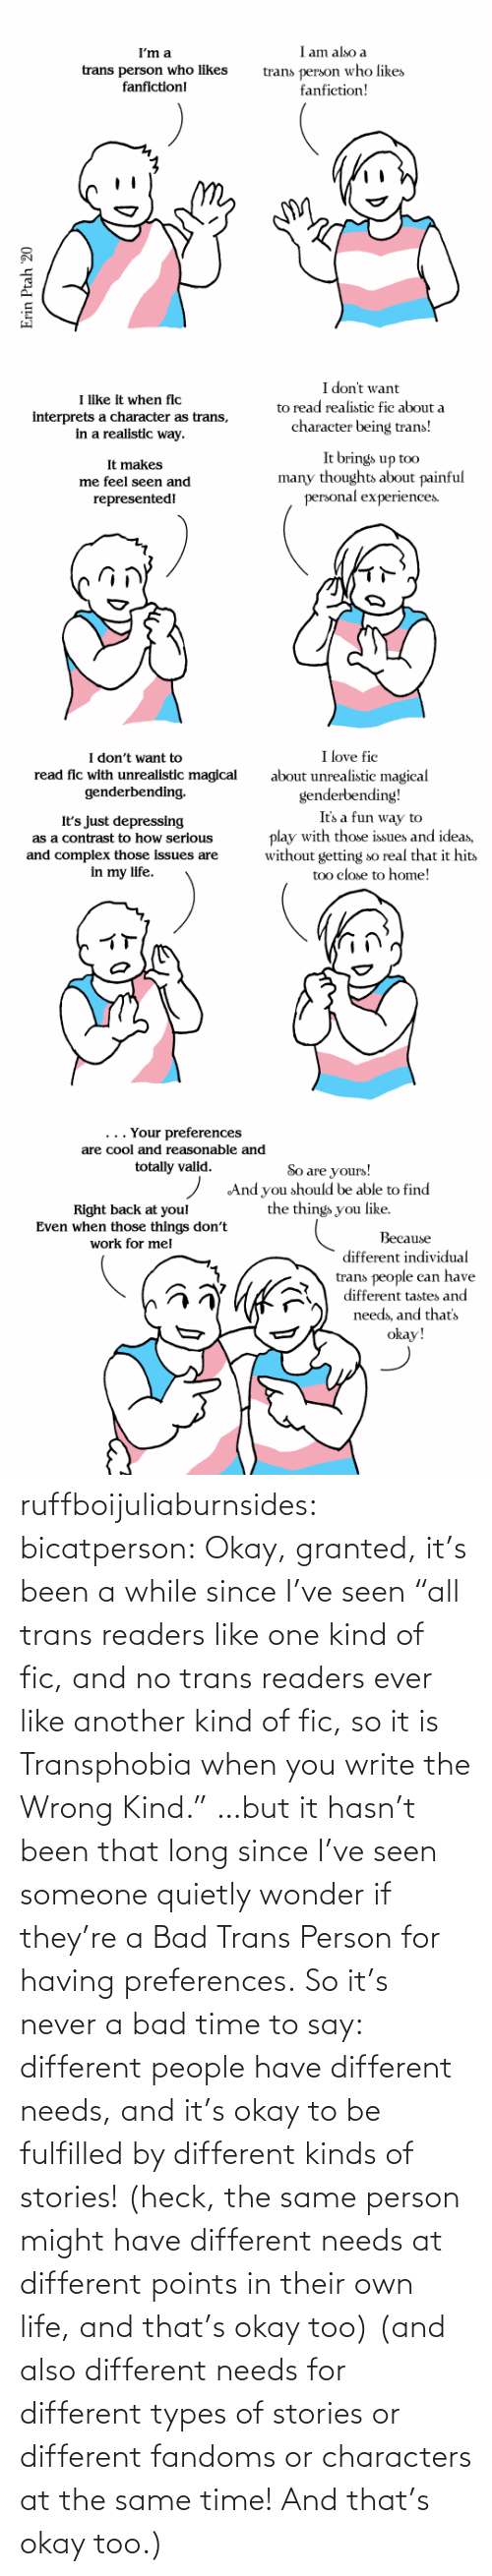 "trans: ruffboijuliaburnsides: bicatperson:   Okay, granted, it's been a while since I've seen ""all trans readers  like one kind of fic, and no trans readers ever like another kind of  fic, so it is Transphobia when you write the Wrong Kind."" …but it hasn't been that long since I've seen someone quietly wonder if they're a Bad Trans Person for having preferences. So  it's never a bad time to say: different people have different needs,  and it's okay to be fulfilled by different kinds of stories! (heck, the same person might have different needs at different points in their own life, and that's okay too)    (and also different needs for different types of stories or different fandoms or characters at the same time!  And that's okay too.)"